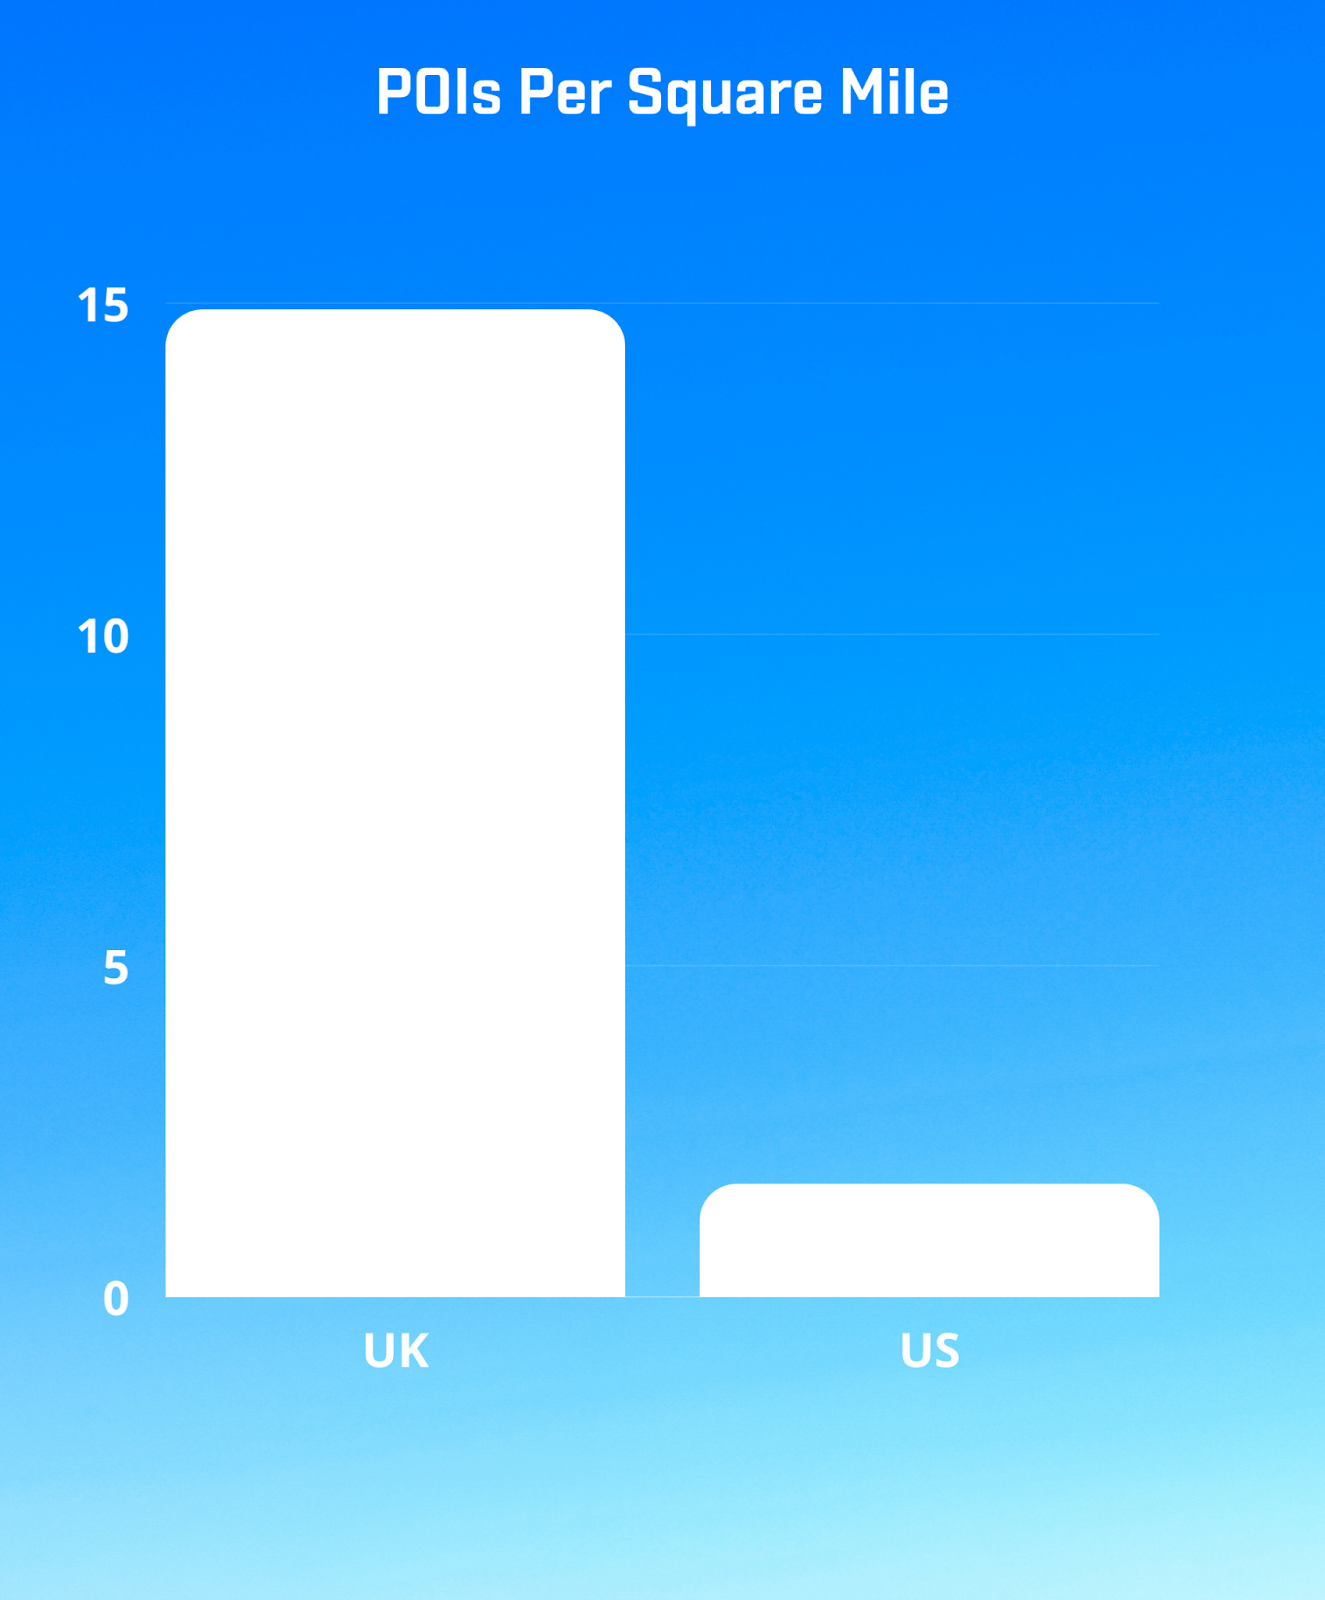 SafeGraph UK data provides POI for England, Scotland, and Wales.